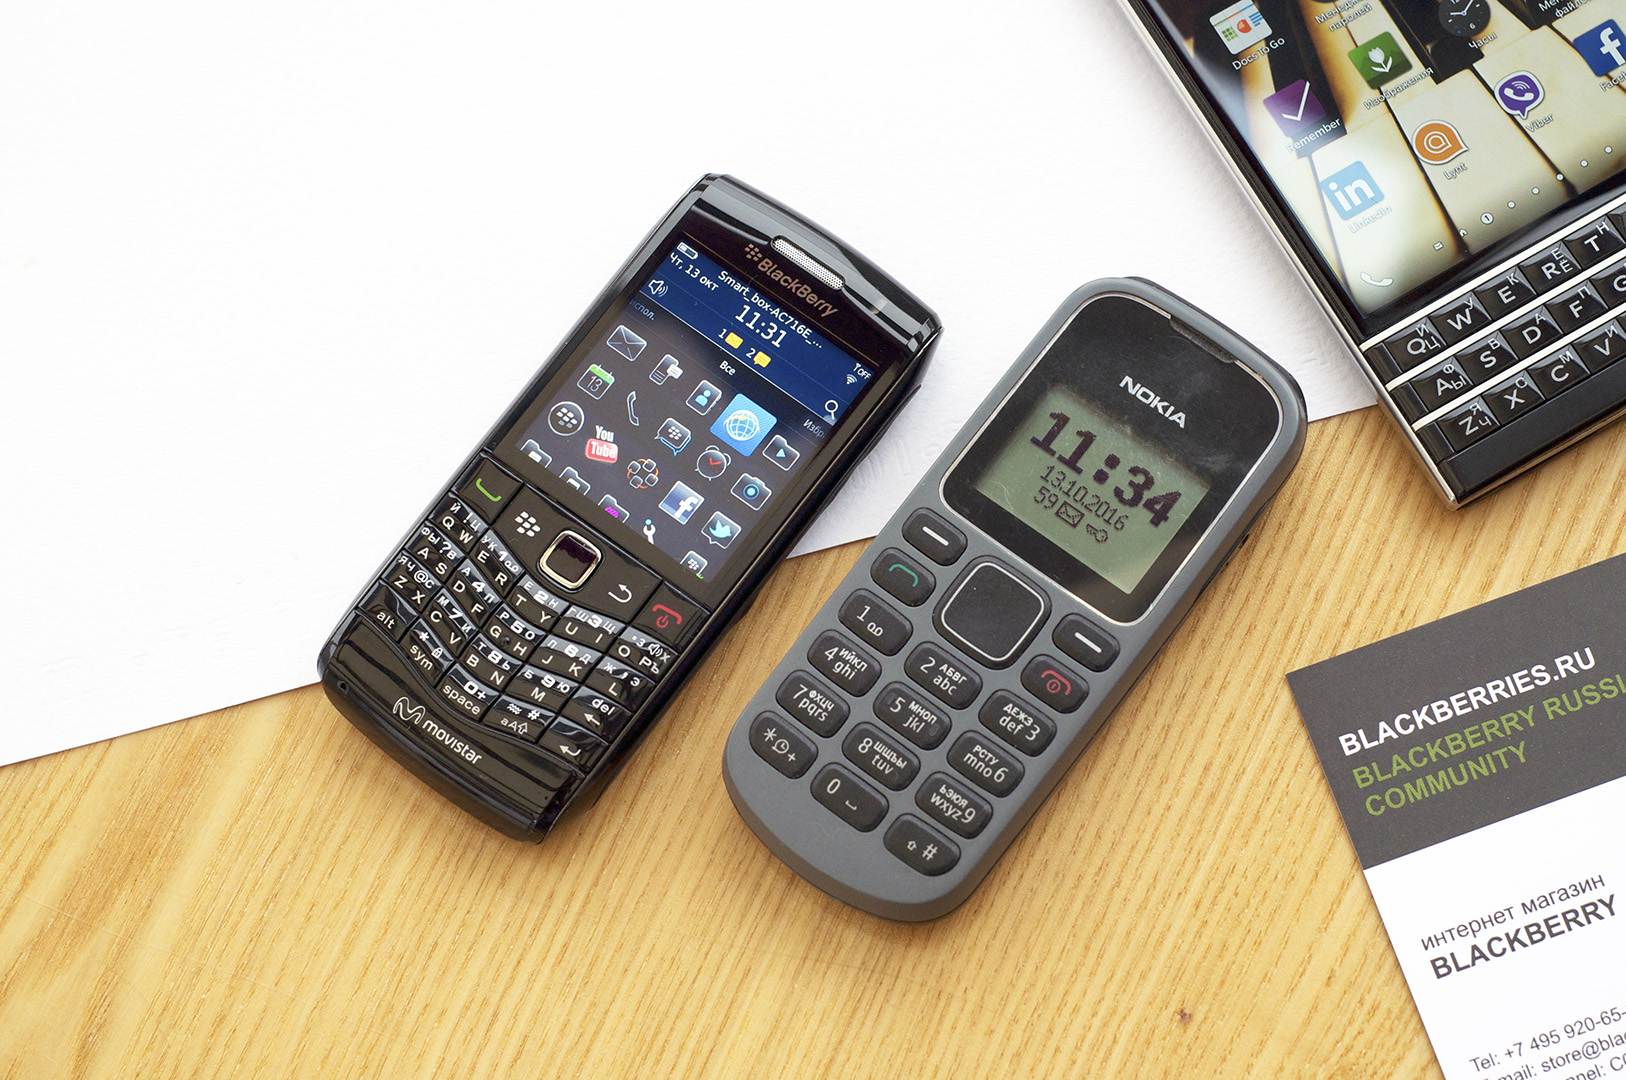 blackberry-9100-pearl-3g-20